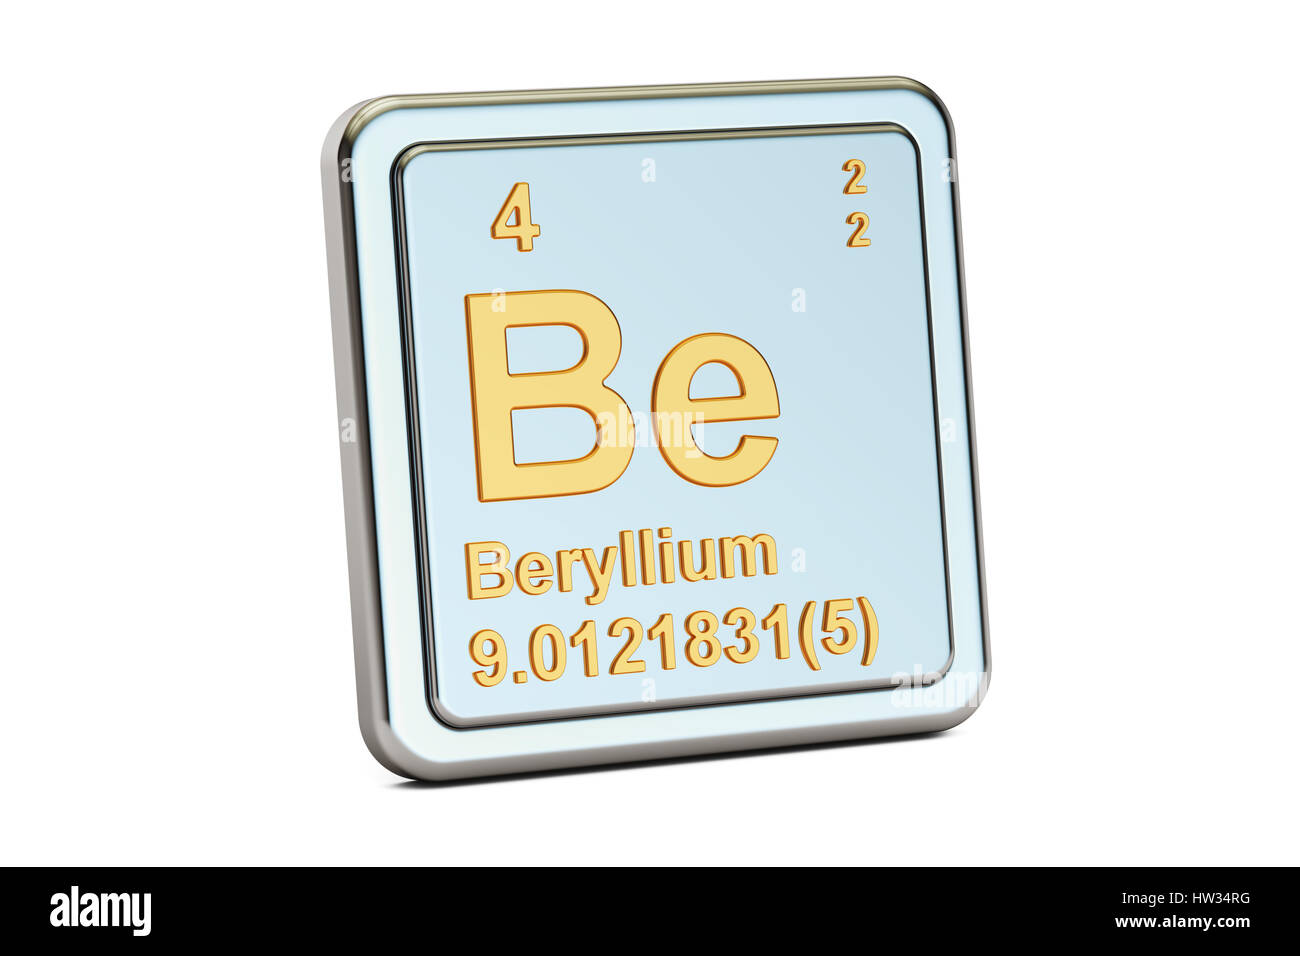 Beryllium be chemical element sign 3d rendering isolated on beryllium be chemical element sign 3d rendering isolated on white background buycottarizona Image collections